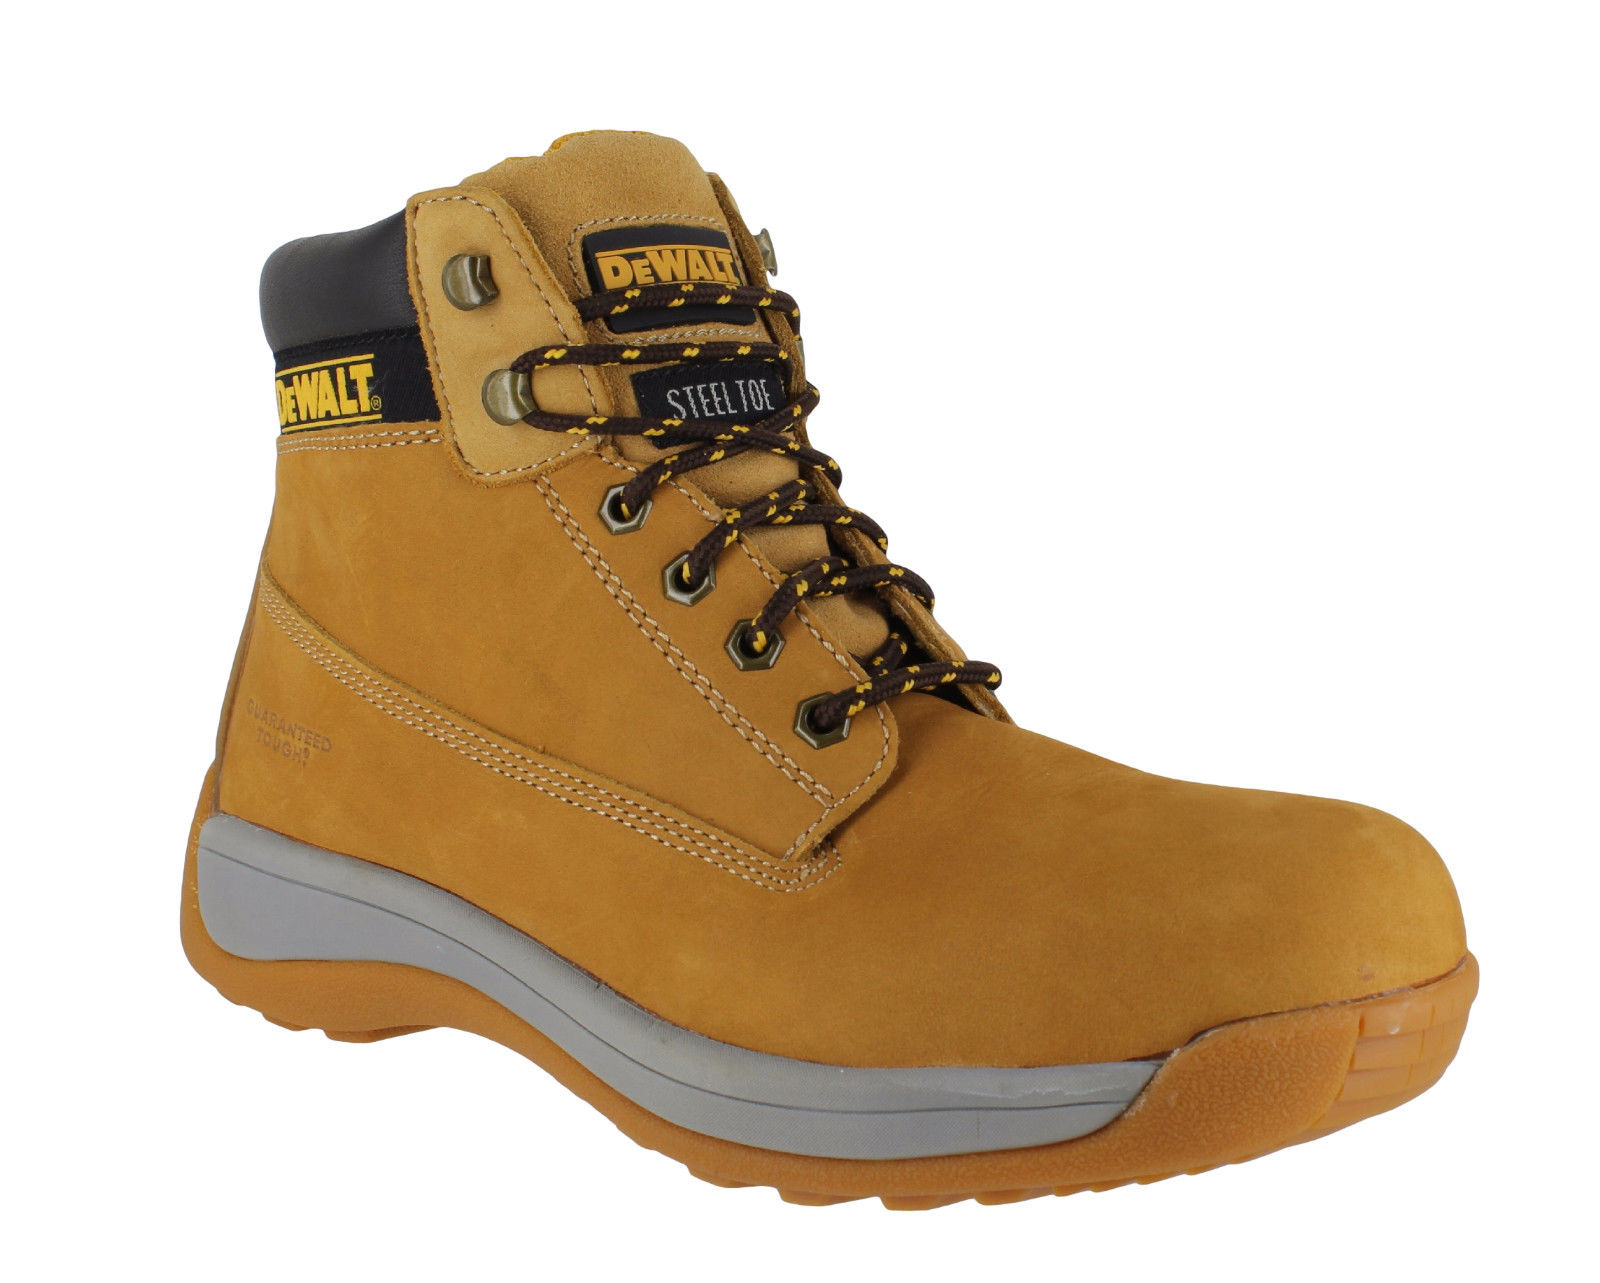 Mens DeWalt Apprentice Leather SB Safety Steel Toe Lace Up Boots Sizes 3 To 13 | EBay